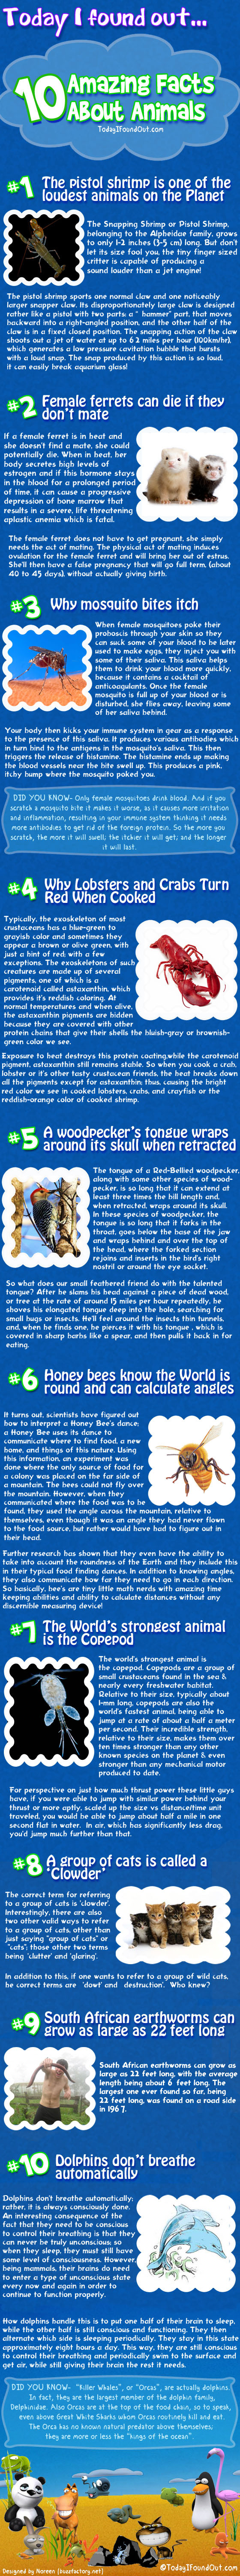 10 Amazing Facts About Animals